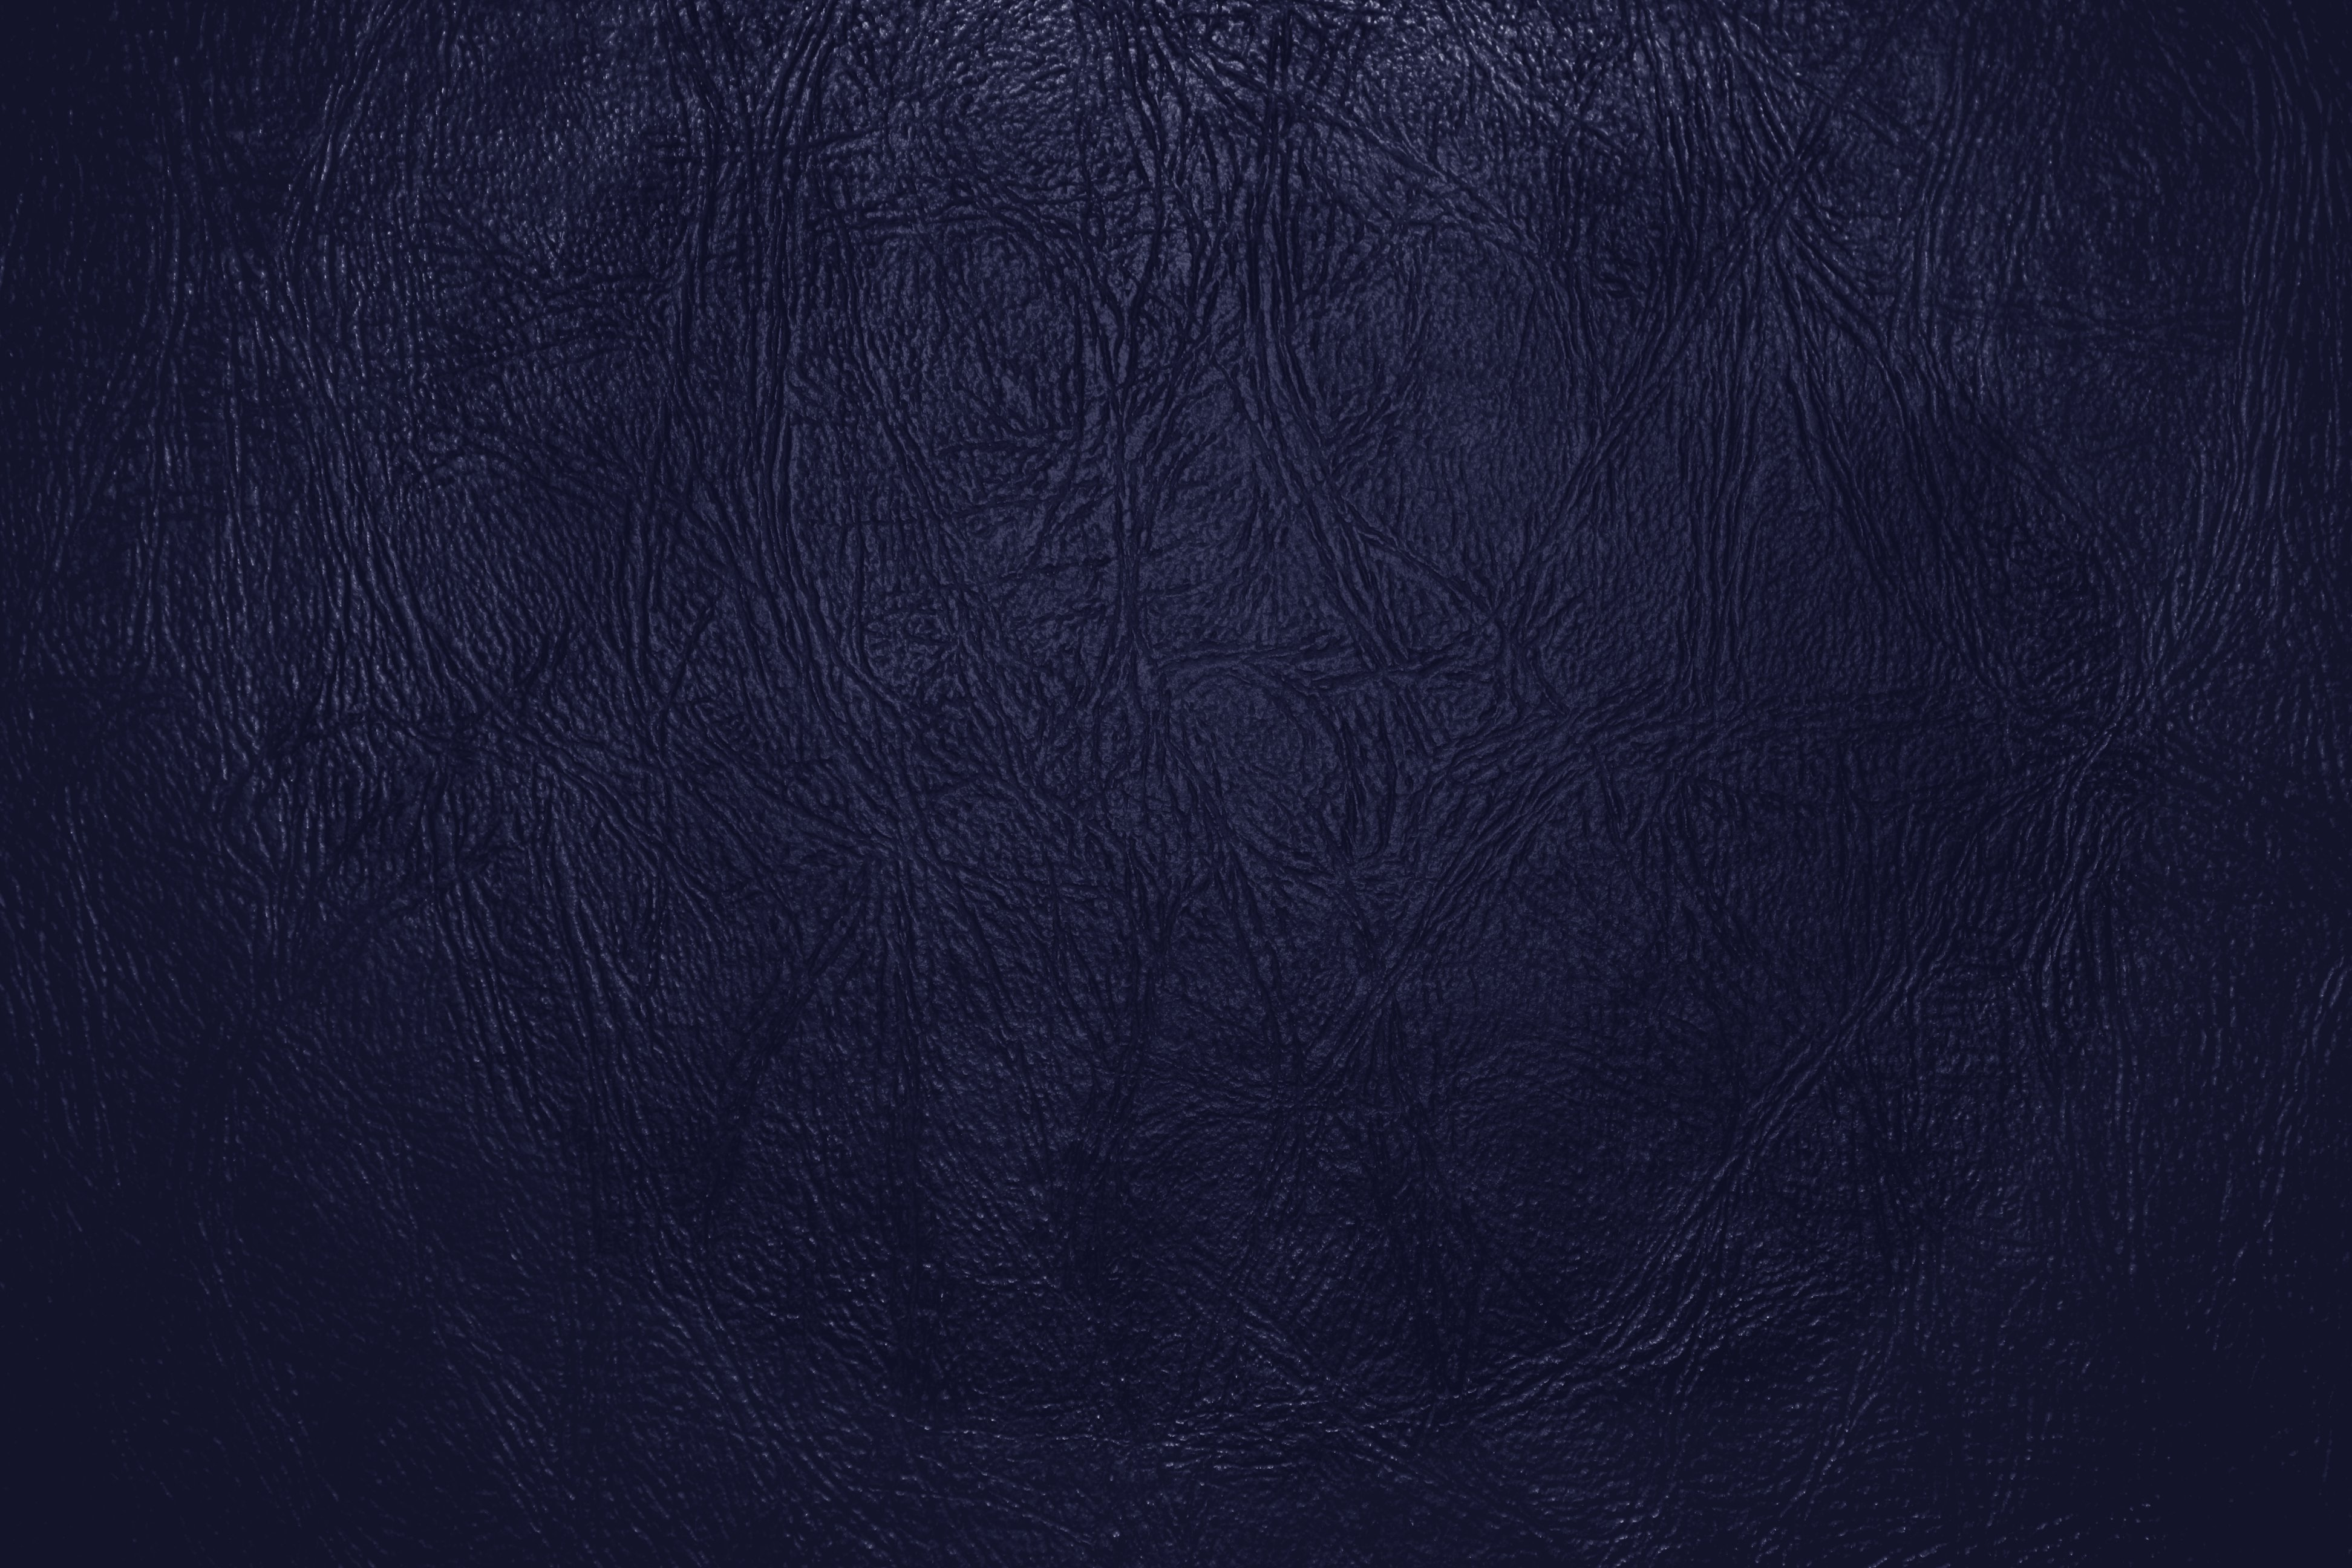 Navy Blue Leather Close Up Texture Picture Photograph Photos 3888x2592